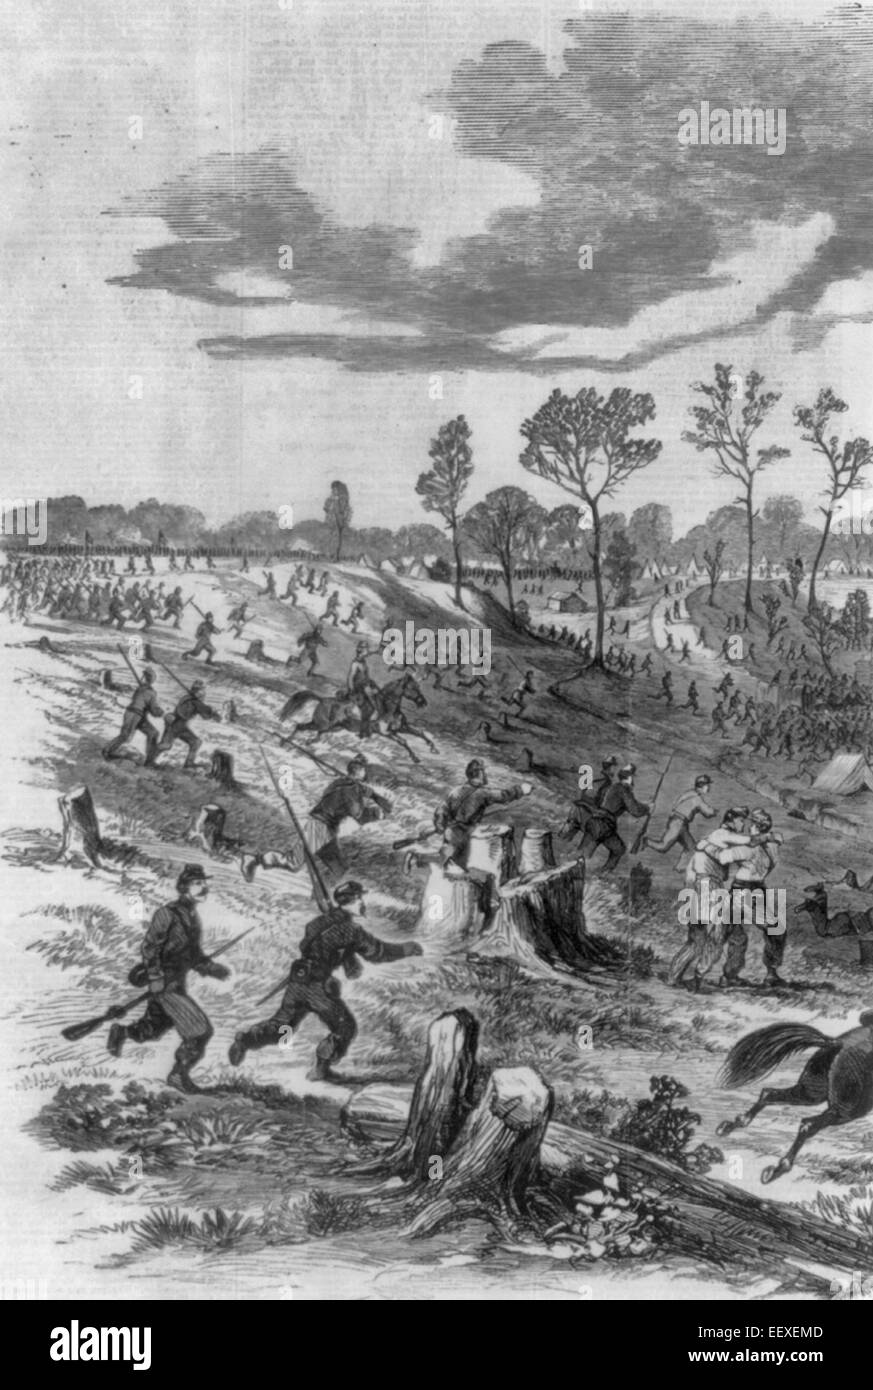 Scene at Pittsburg Landing, Tennessee River, Sunday Afternoon, 6th April 1862 - Union soldiers running toward Riverboat - Stock Image